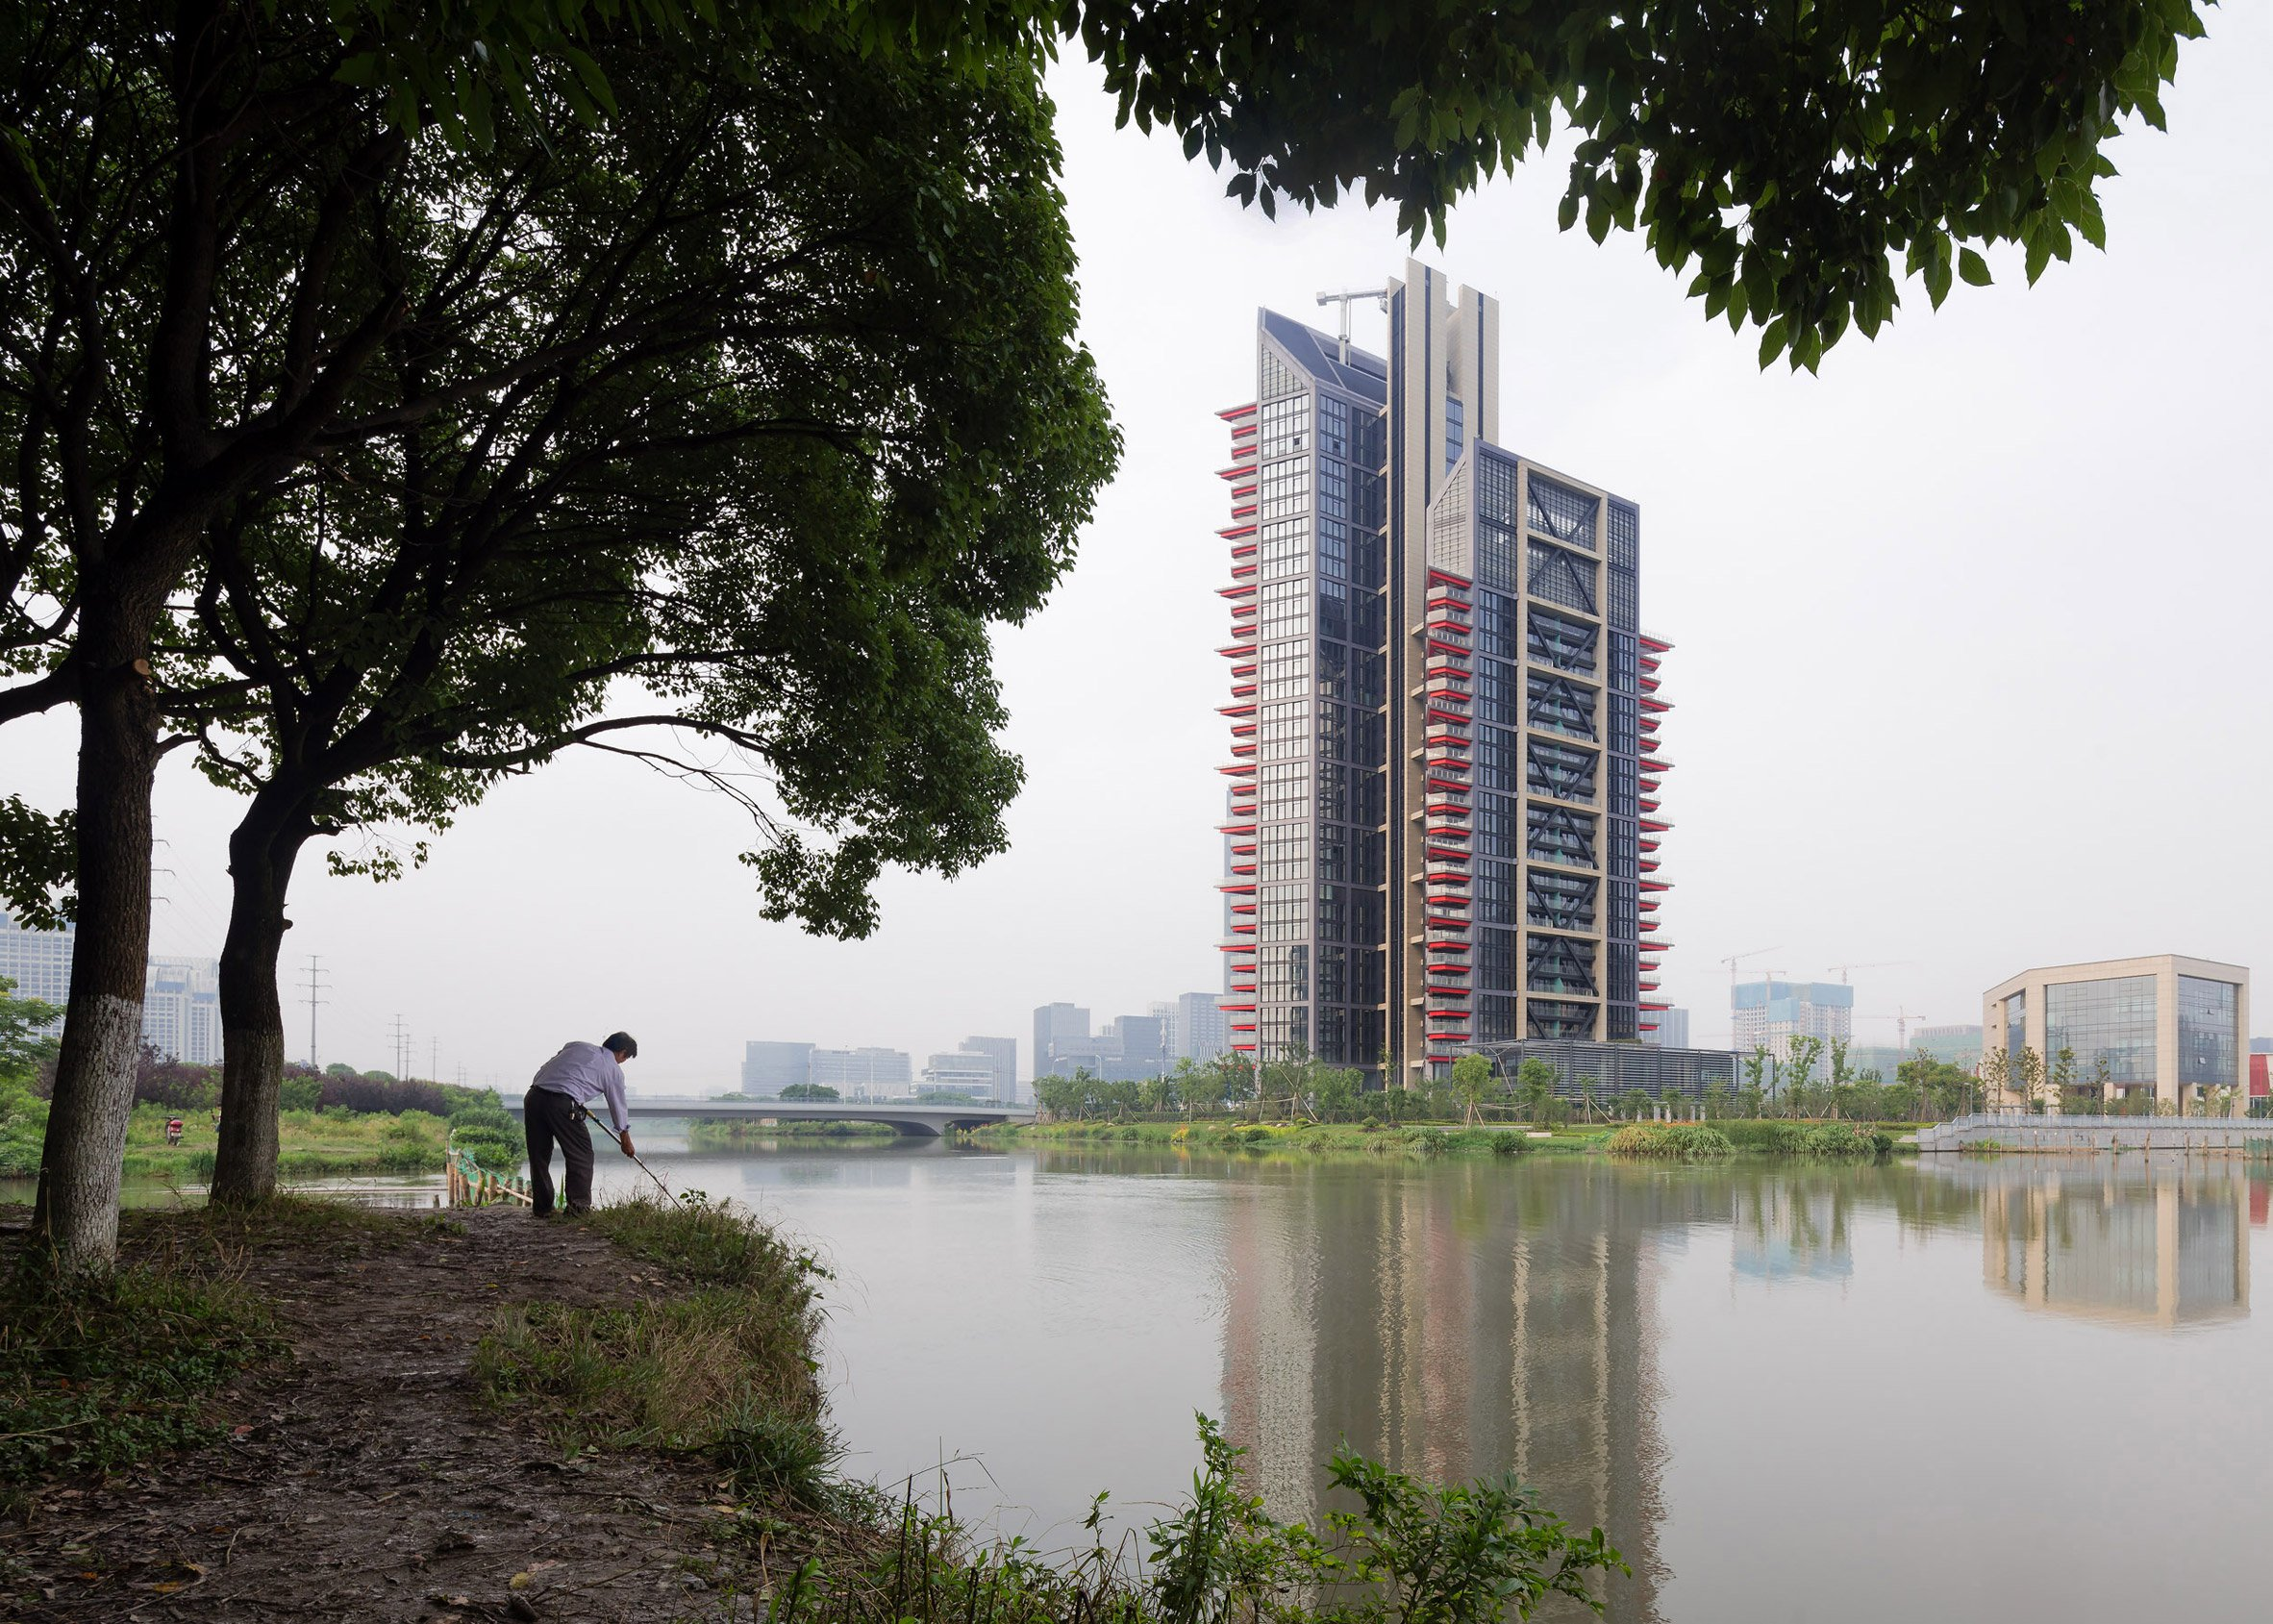 Photographer Marc Goodwin reveals new buildings under construction in Chinese city Ningbo